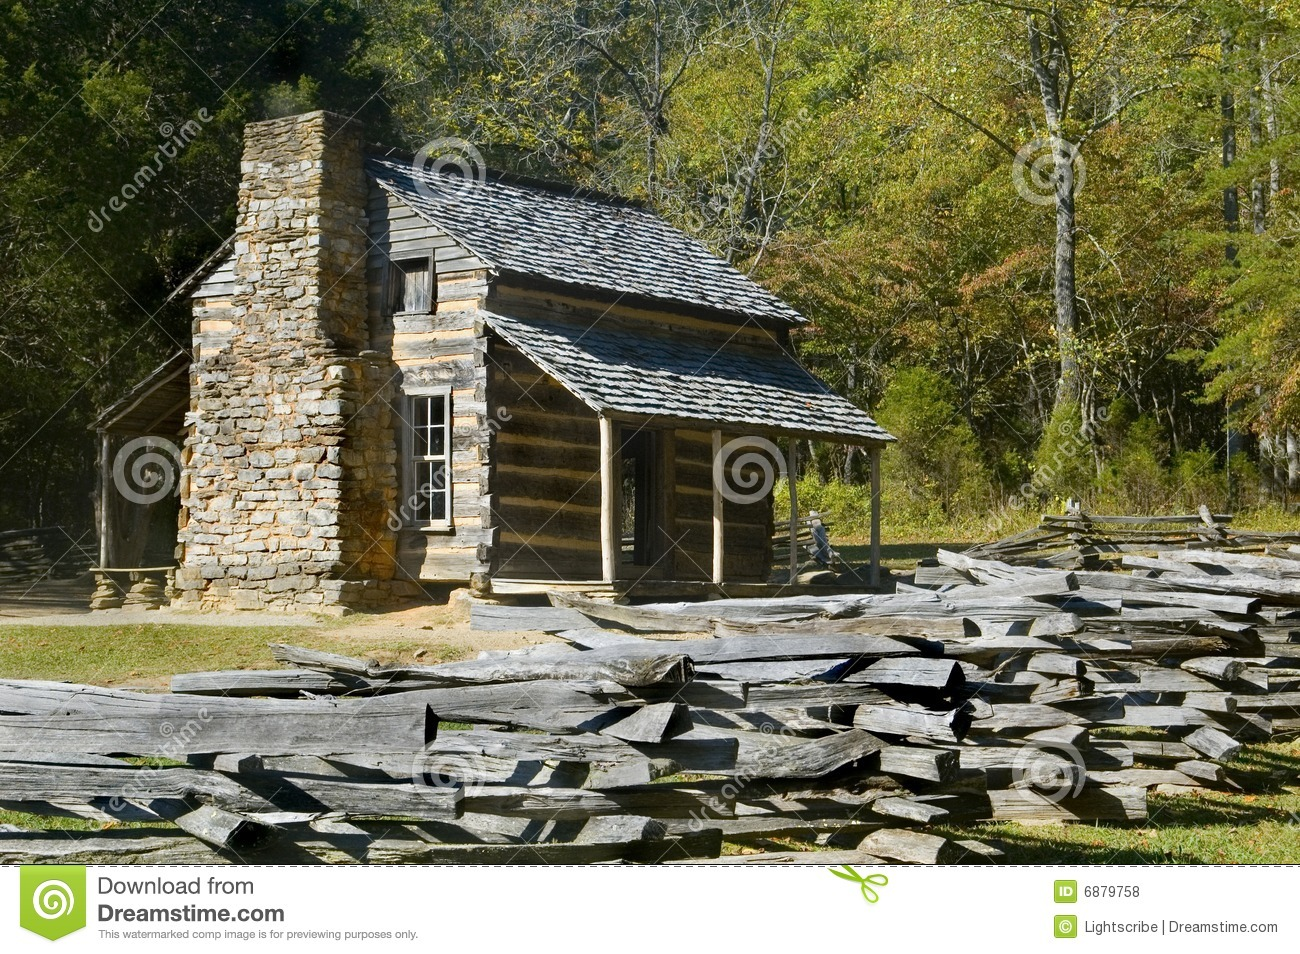 Log Cabin, cades cove, Great Smoky Mountains Park